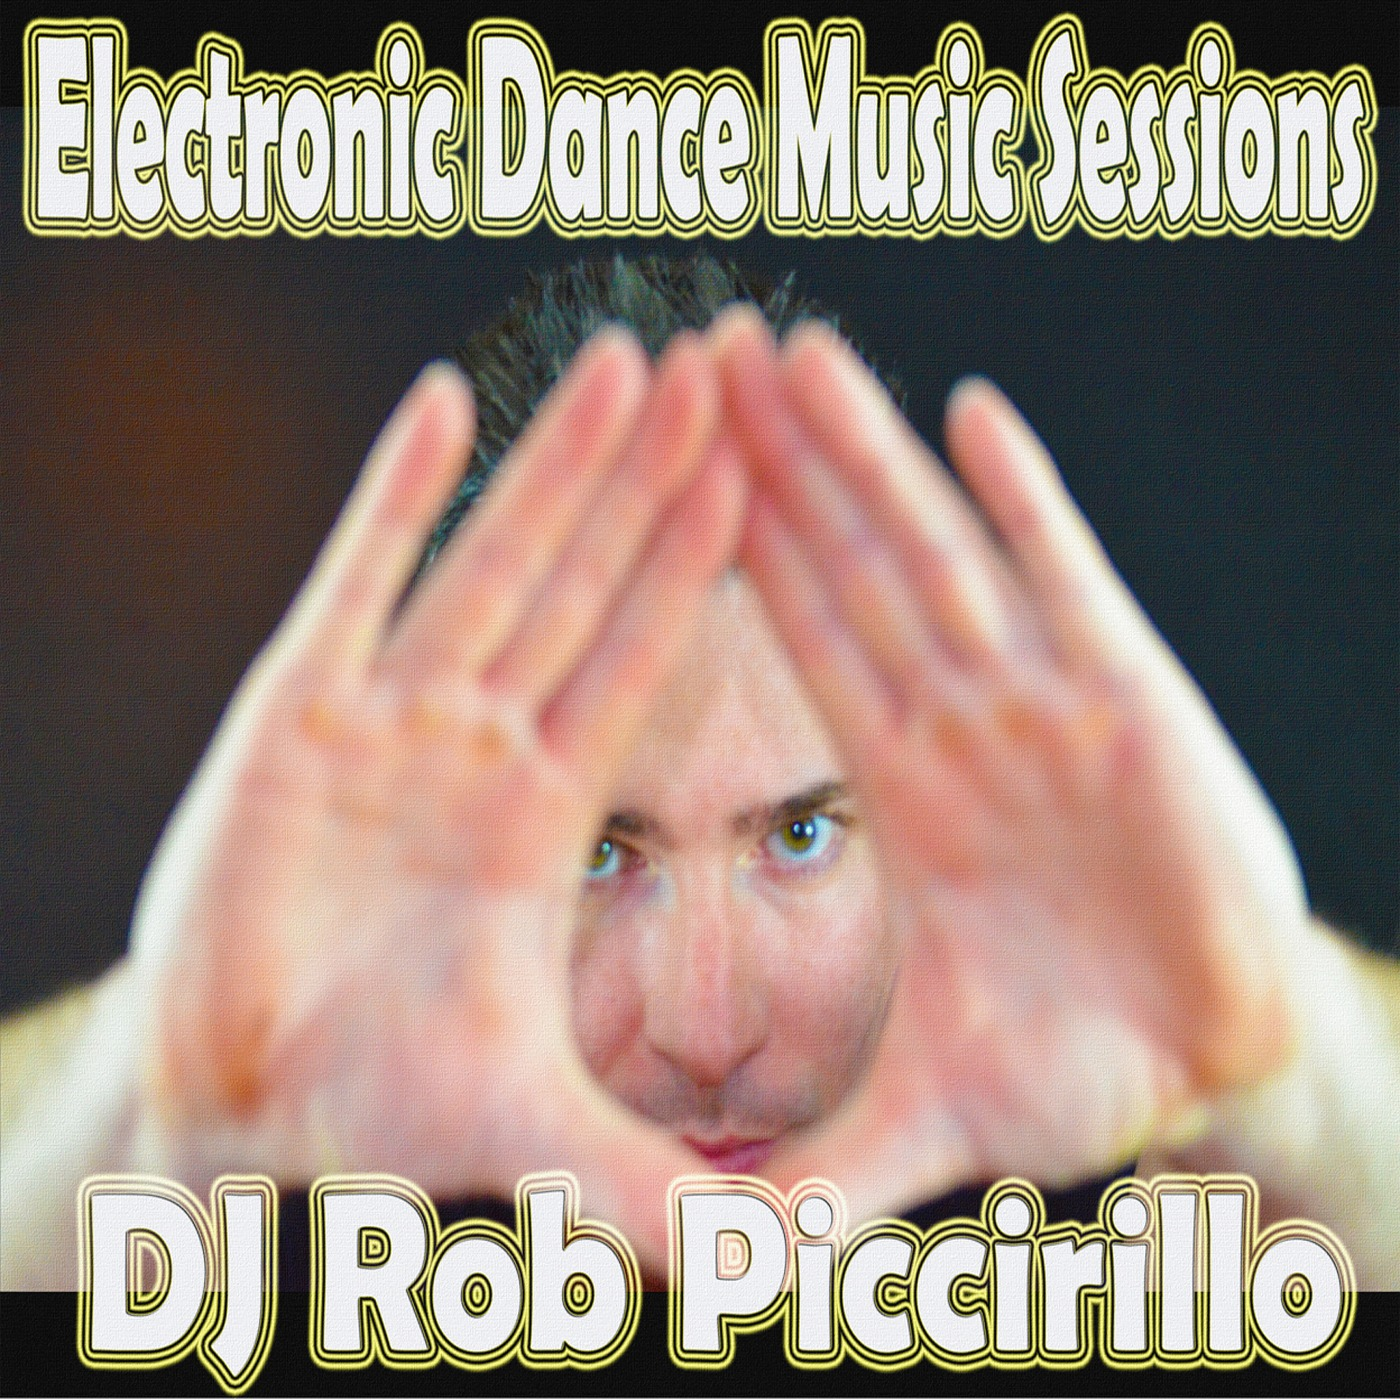 Rob Piccirillo Presents: Electronic Dance Music Sessions